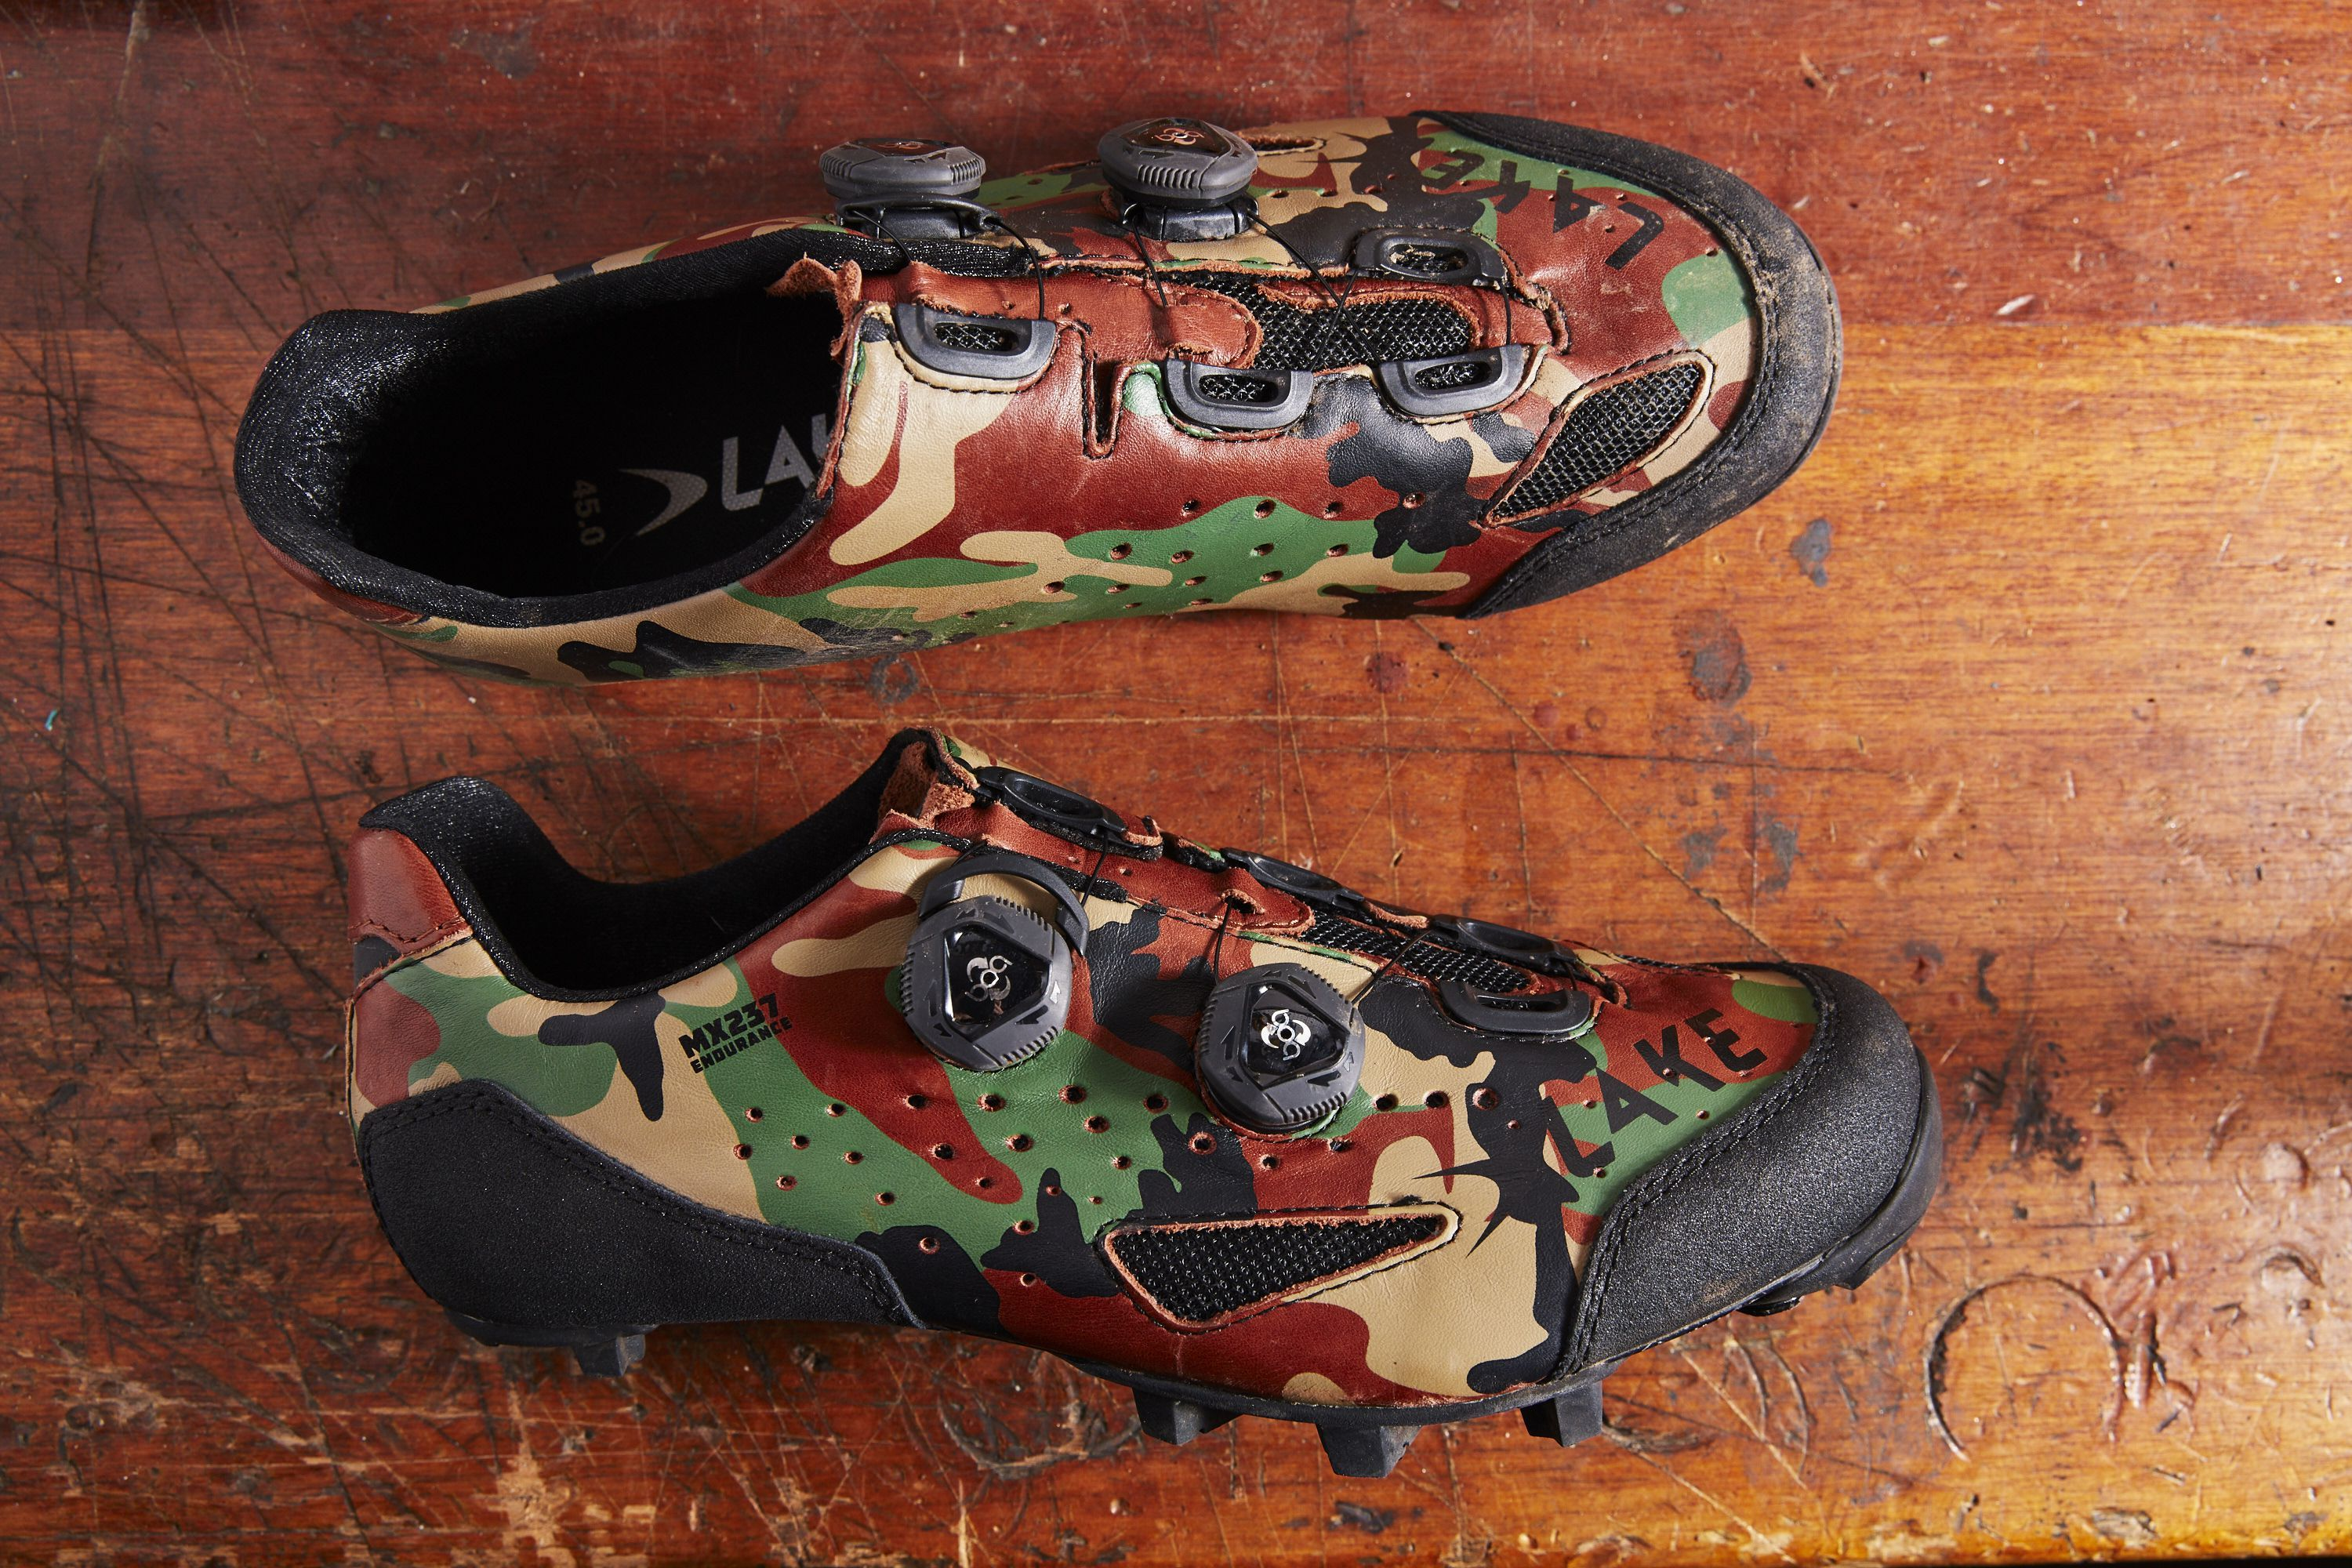 The Lake MX237 Endurance Is the Only Mountain Bike Shoe You Need